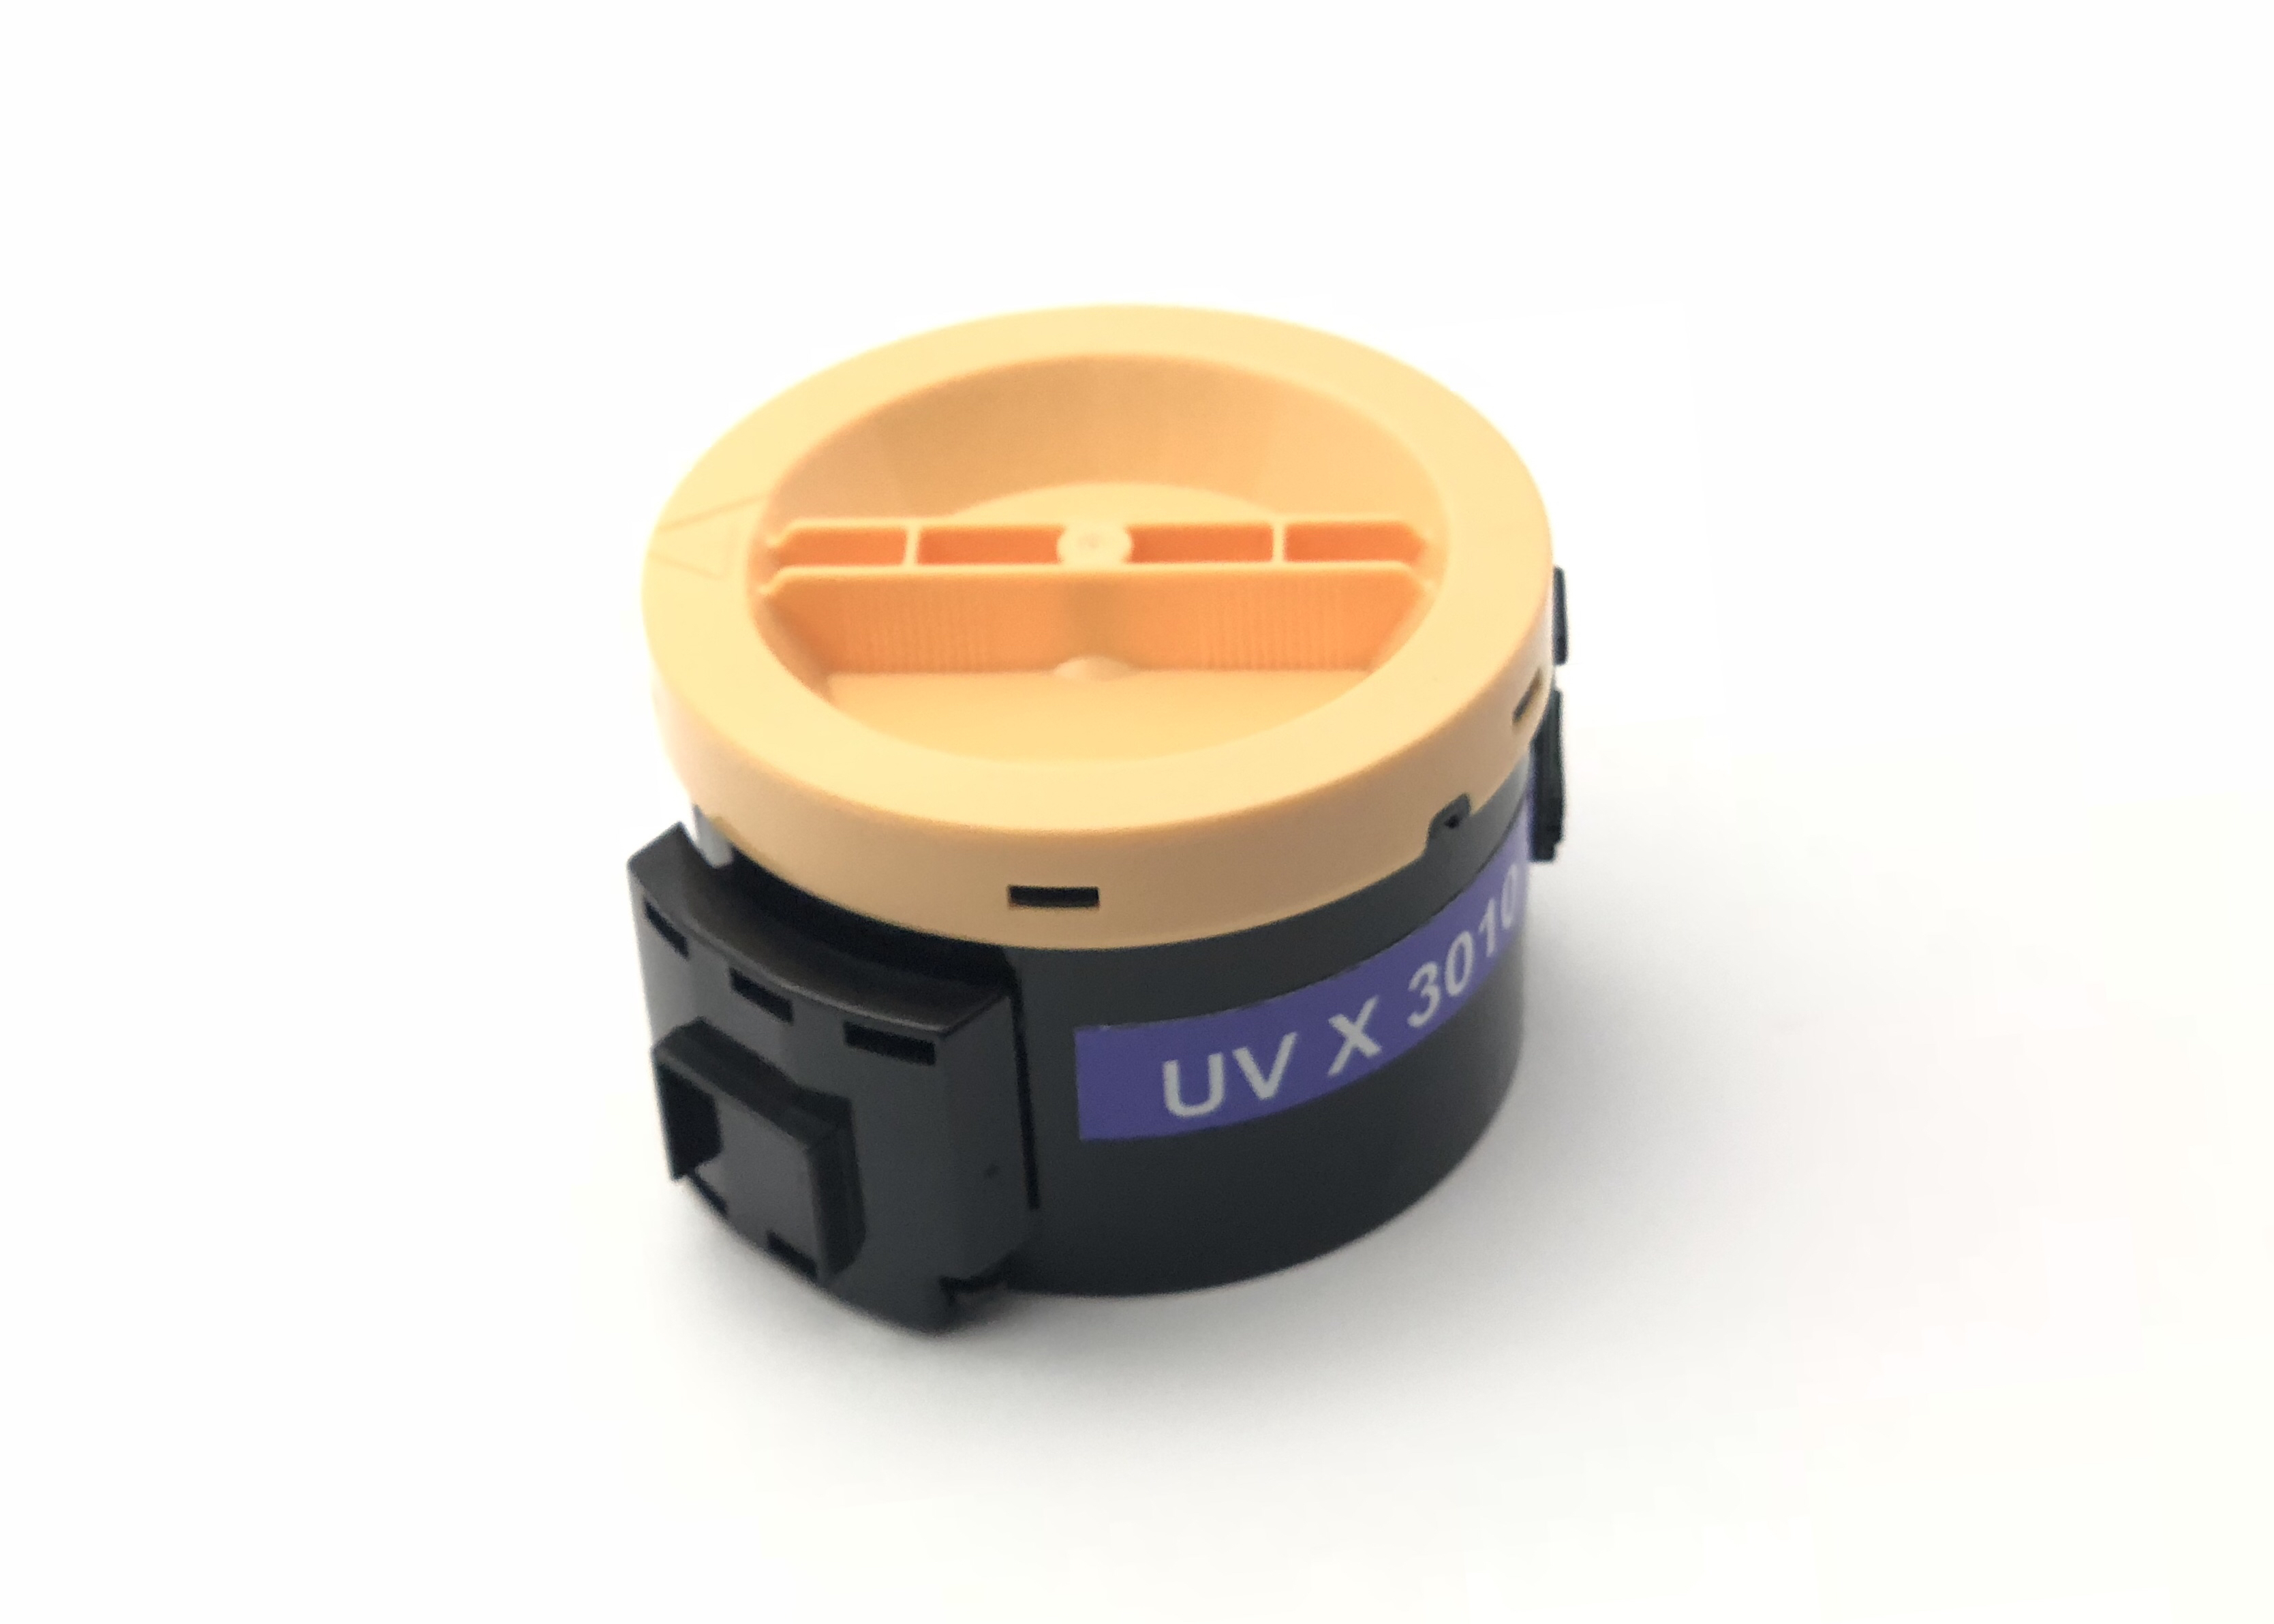 uv xerox x3010 cartridge